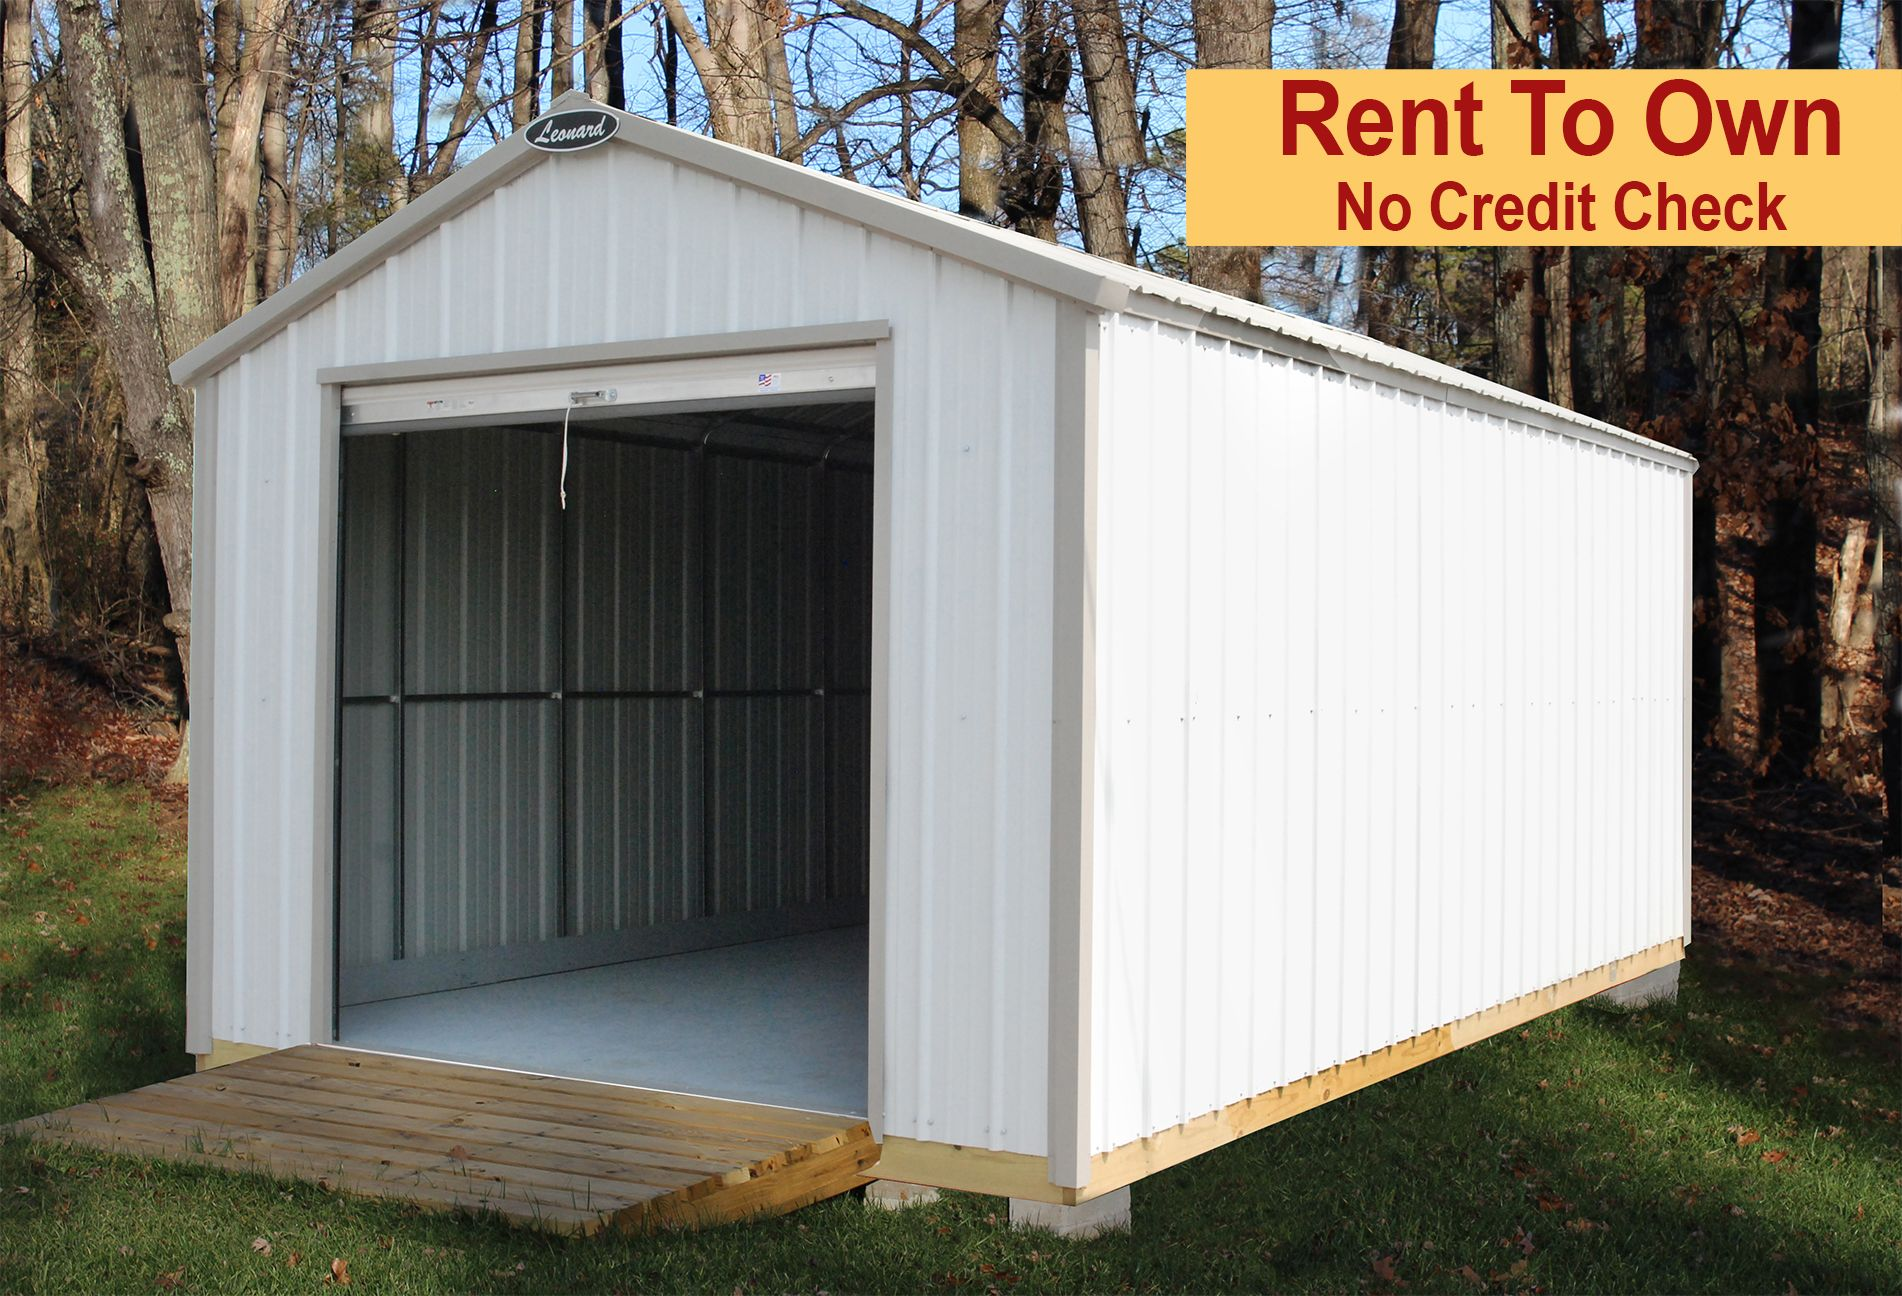 Storage Sheds Barns Playhouses Garages Greenhouses And All Sorts Of Small Buildings Can Be Manufactured And Delivere Shed Construction Shed Backyard Sheds